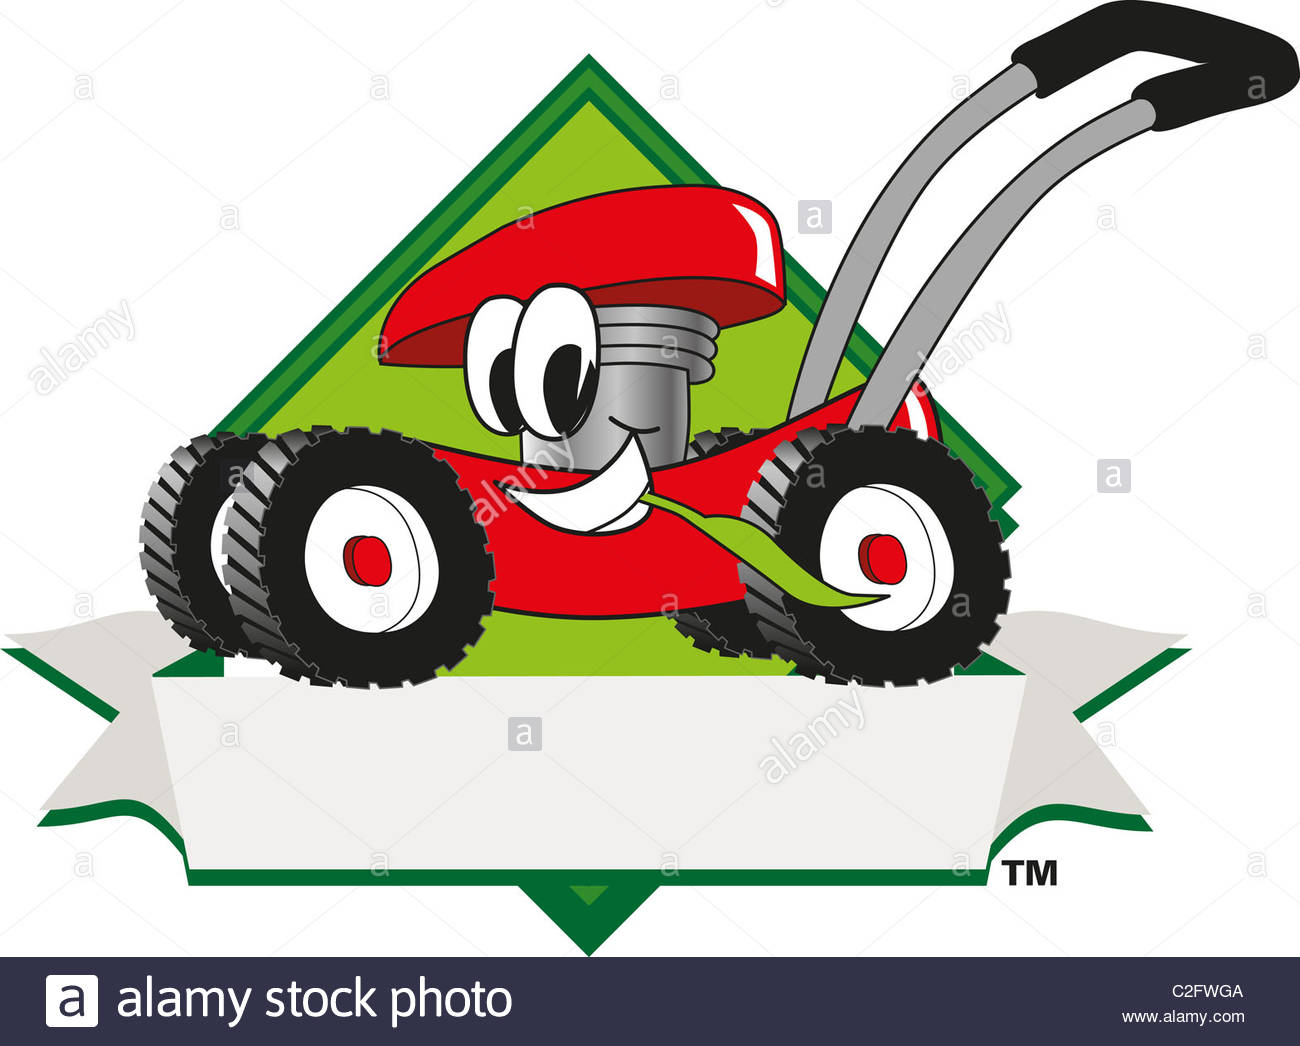 Cartoon cowgirl hat lawn mower clipart free banner transparent stock Cartoon Lawn Mower Clipart | Free download best Cartoon Lawn Mower ... banner transparent stock